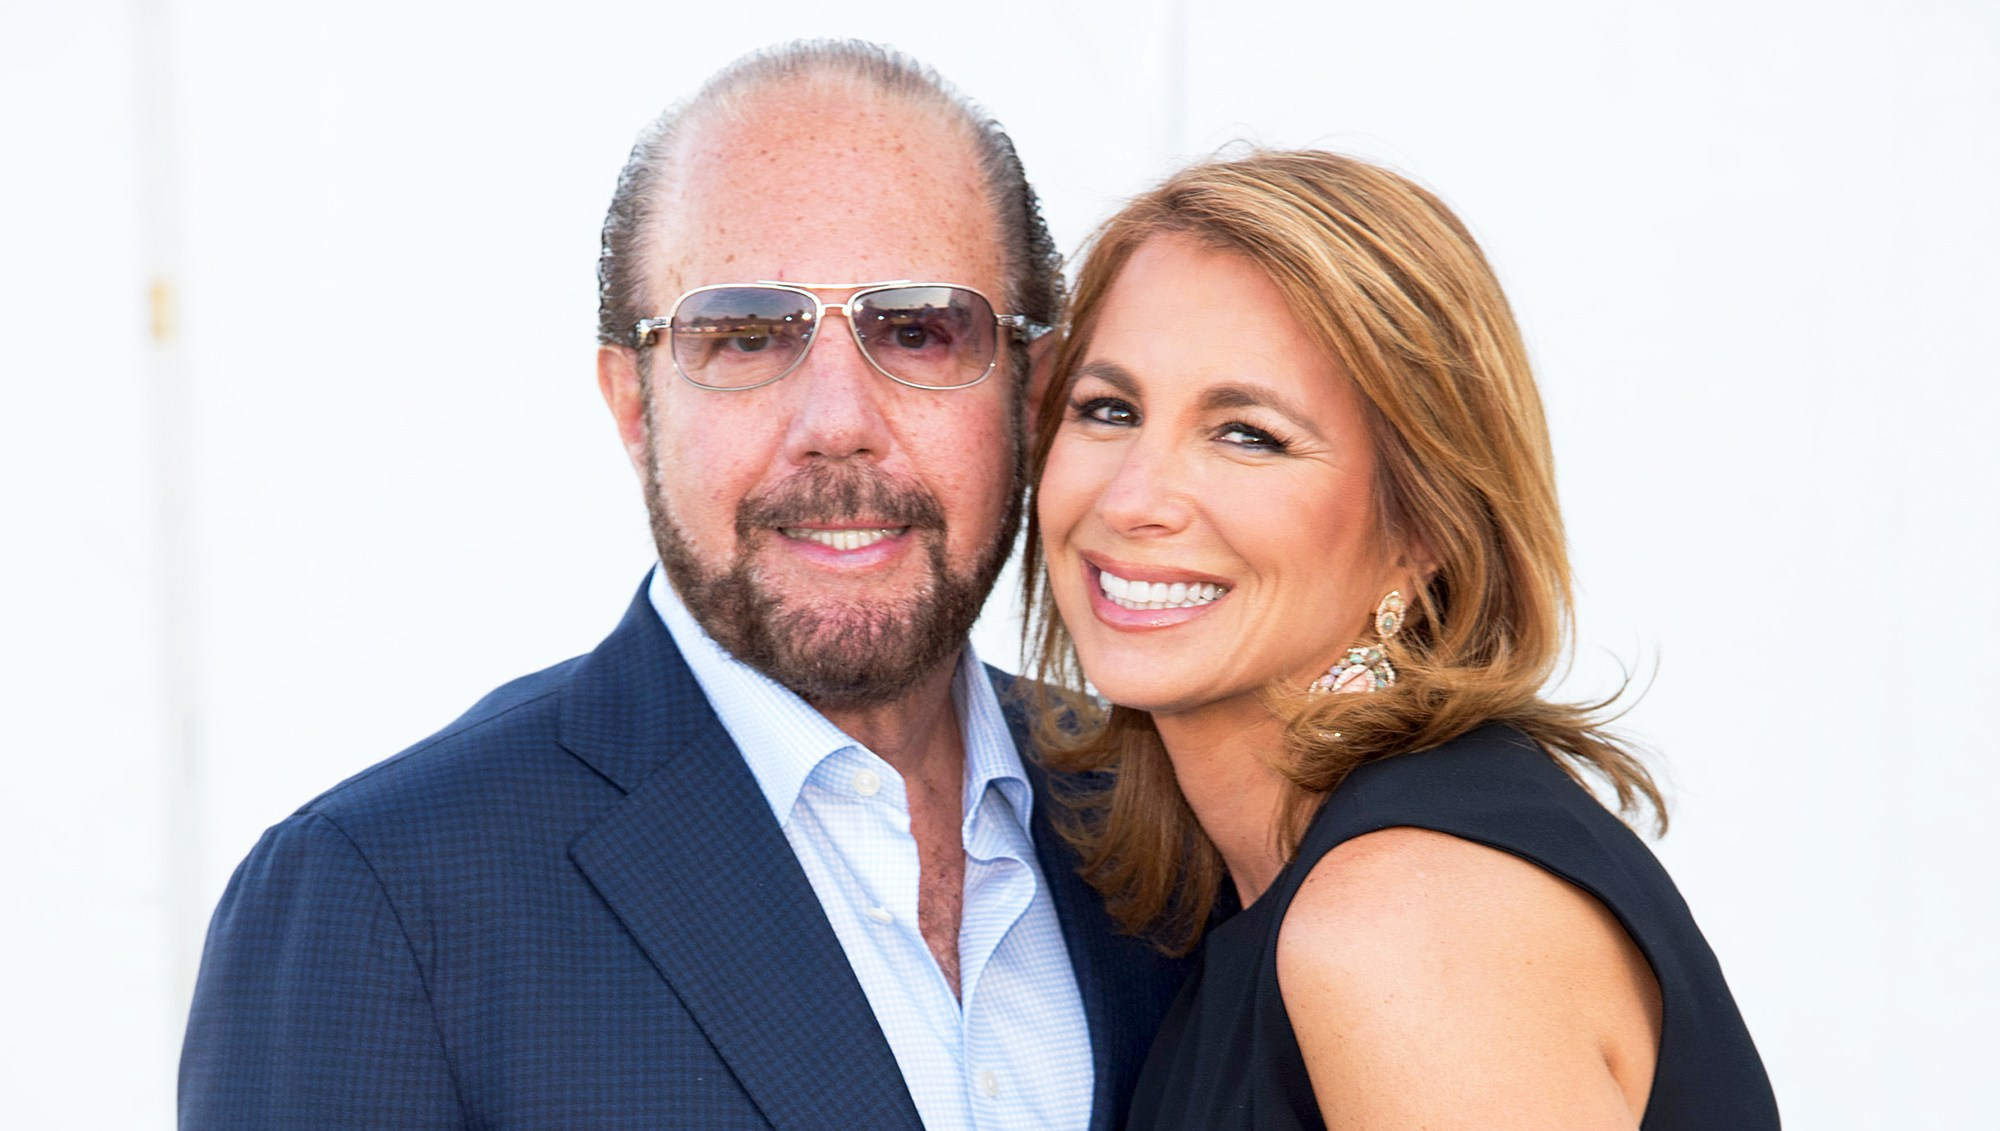 Jill Zarin and husband Bobby Zarinattend the Samuel Waxman Cancer Research Foundation 11th Annual A Hamptons Happening in Southampton, New York.